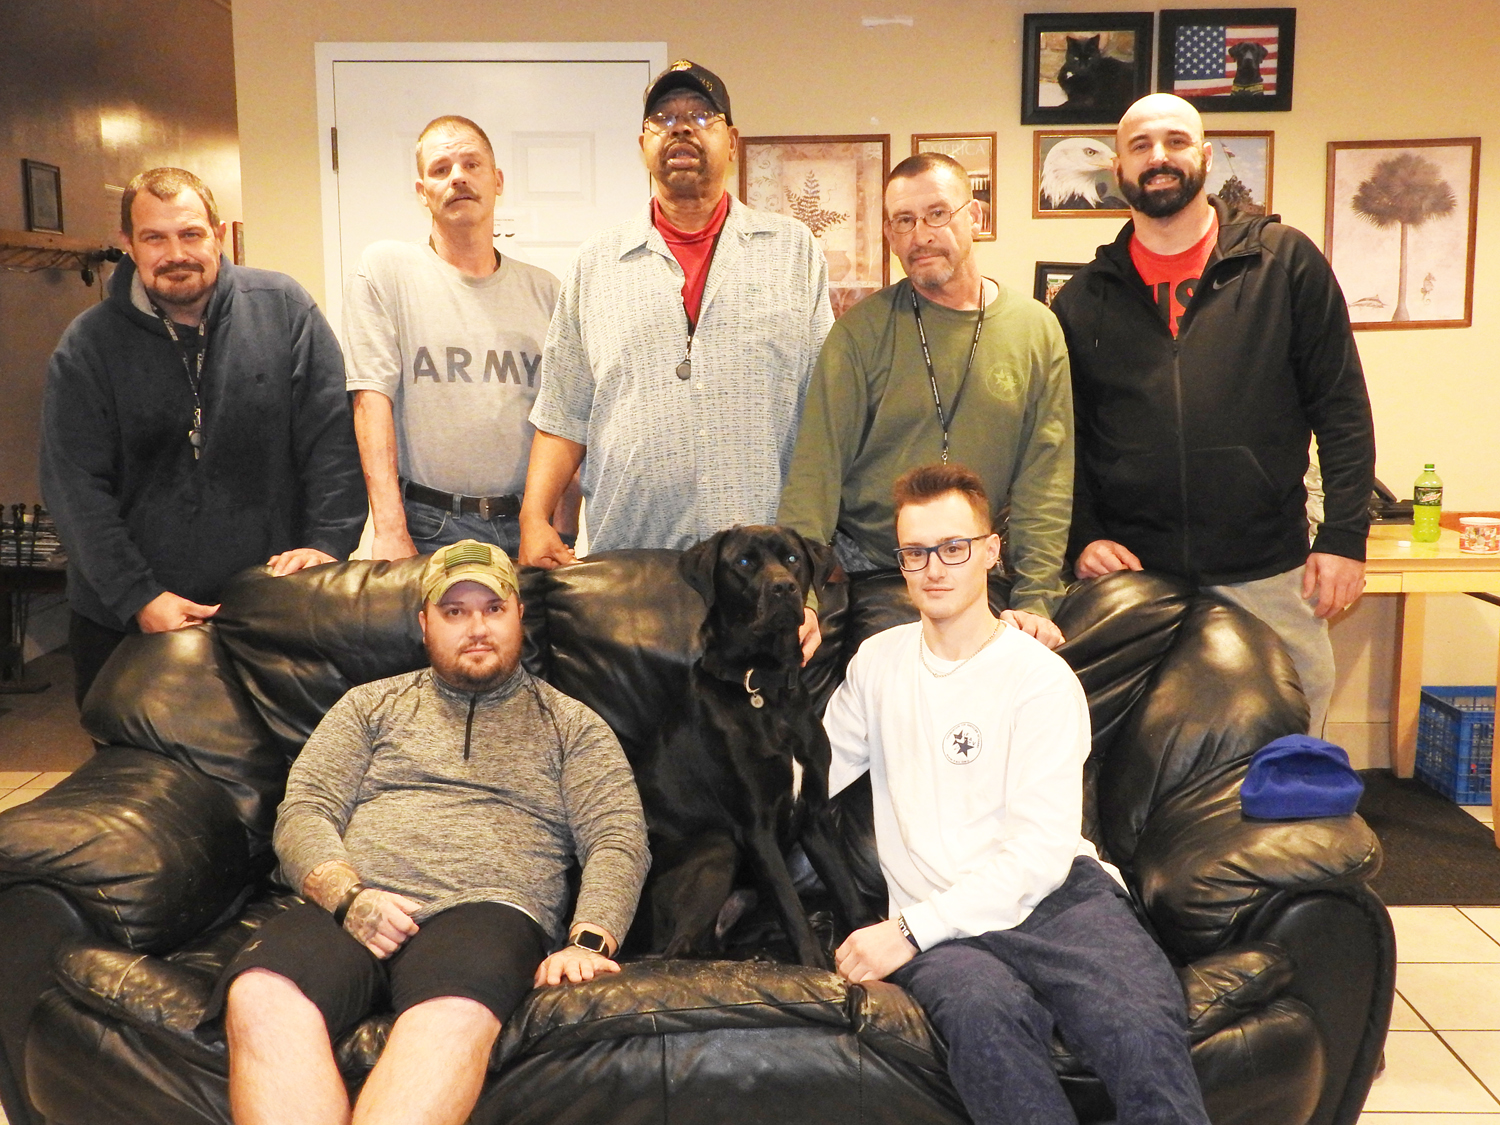 Veterans at Richards House, a home for male veterans run by the Veteran's Outreach Center. L-r back row: Ted, Tom, David, Joe and Jason; front row: Bruce, Hans (dog) and Austen. Photo by Karen Fien